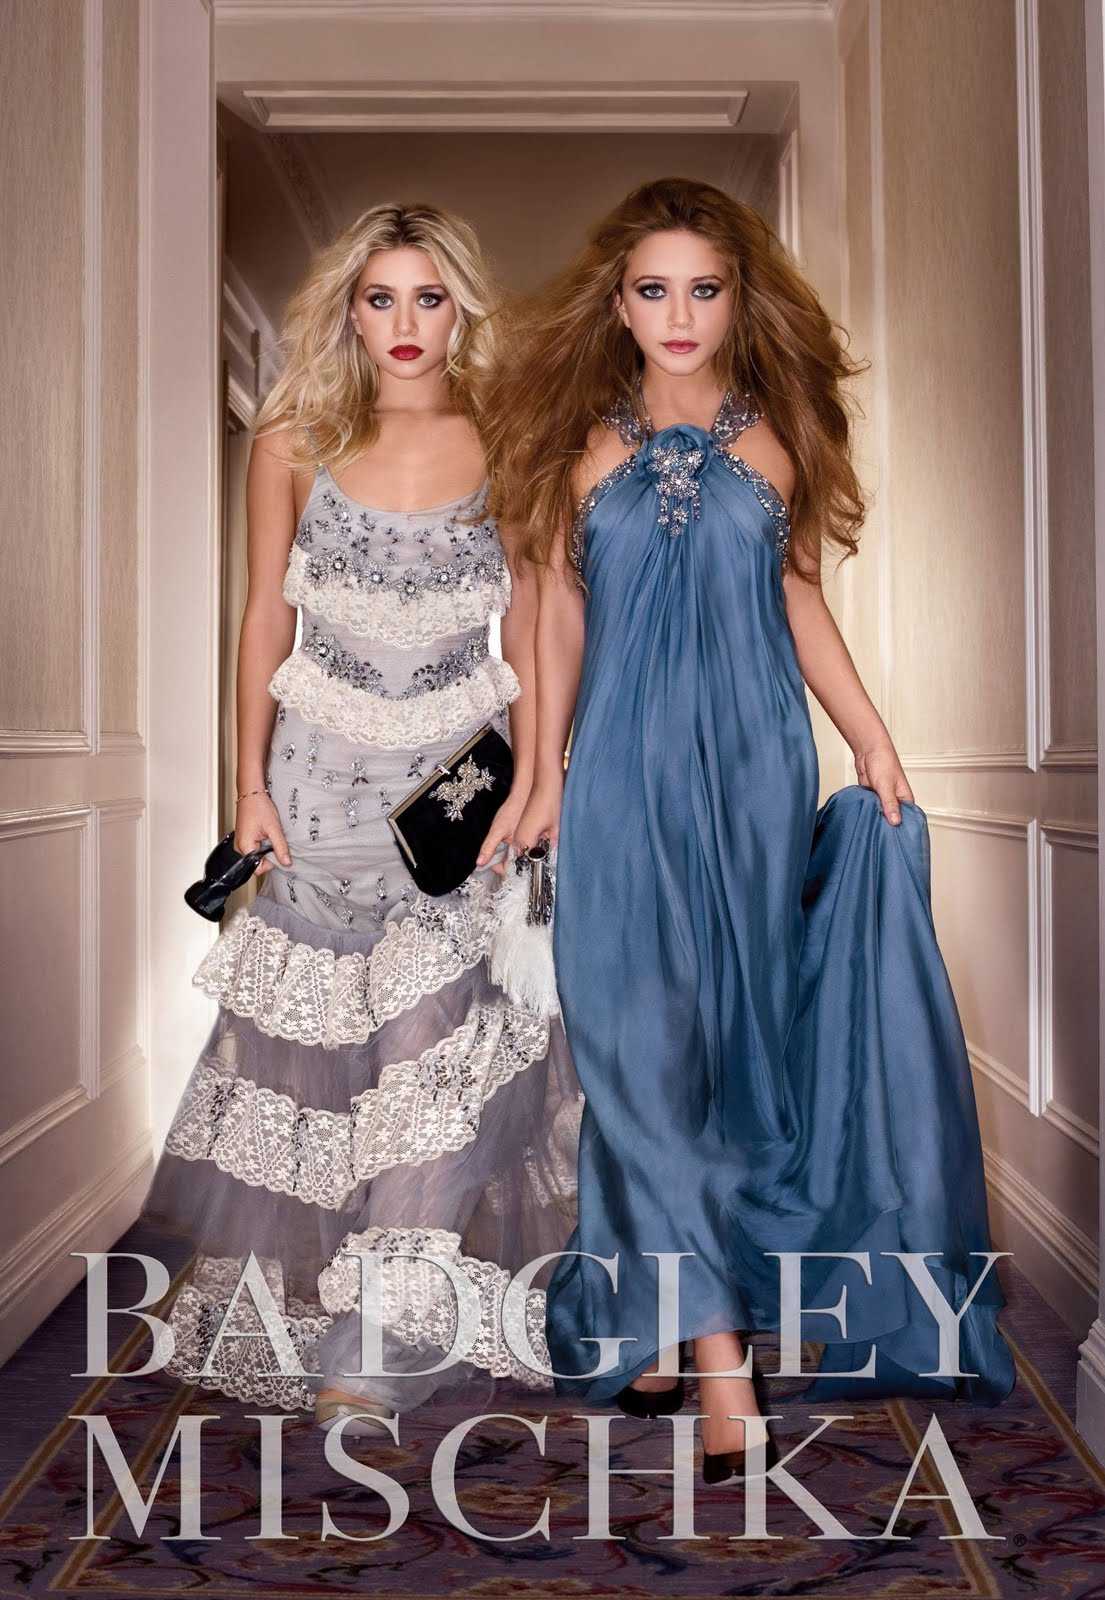 http://2.bp.blogspot.com/_A0TN1-sv2hQ/S9hhbnuN_gI/AAAAAAAAADk/h7QK-7f_AEg/s1600/mary-kate-ashley-olsen-badgley-mischka-ad-hq-02.jpg